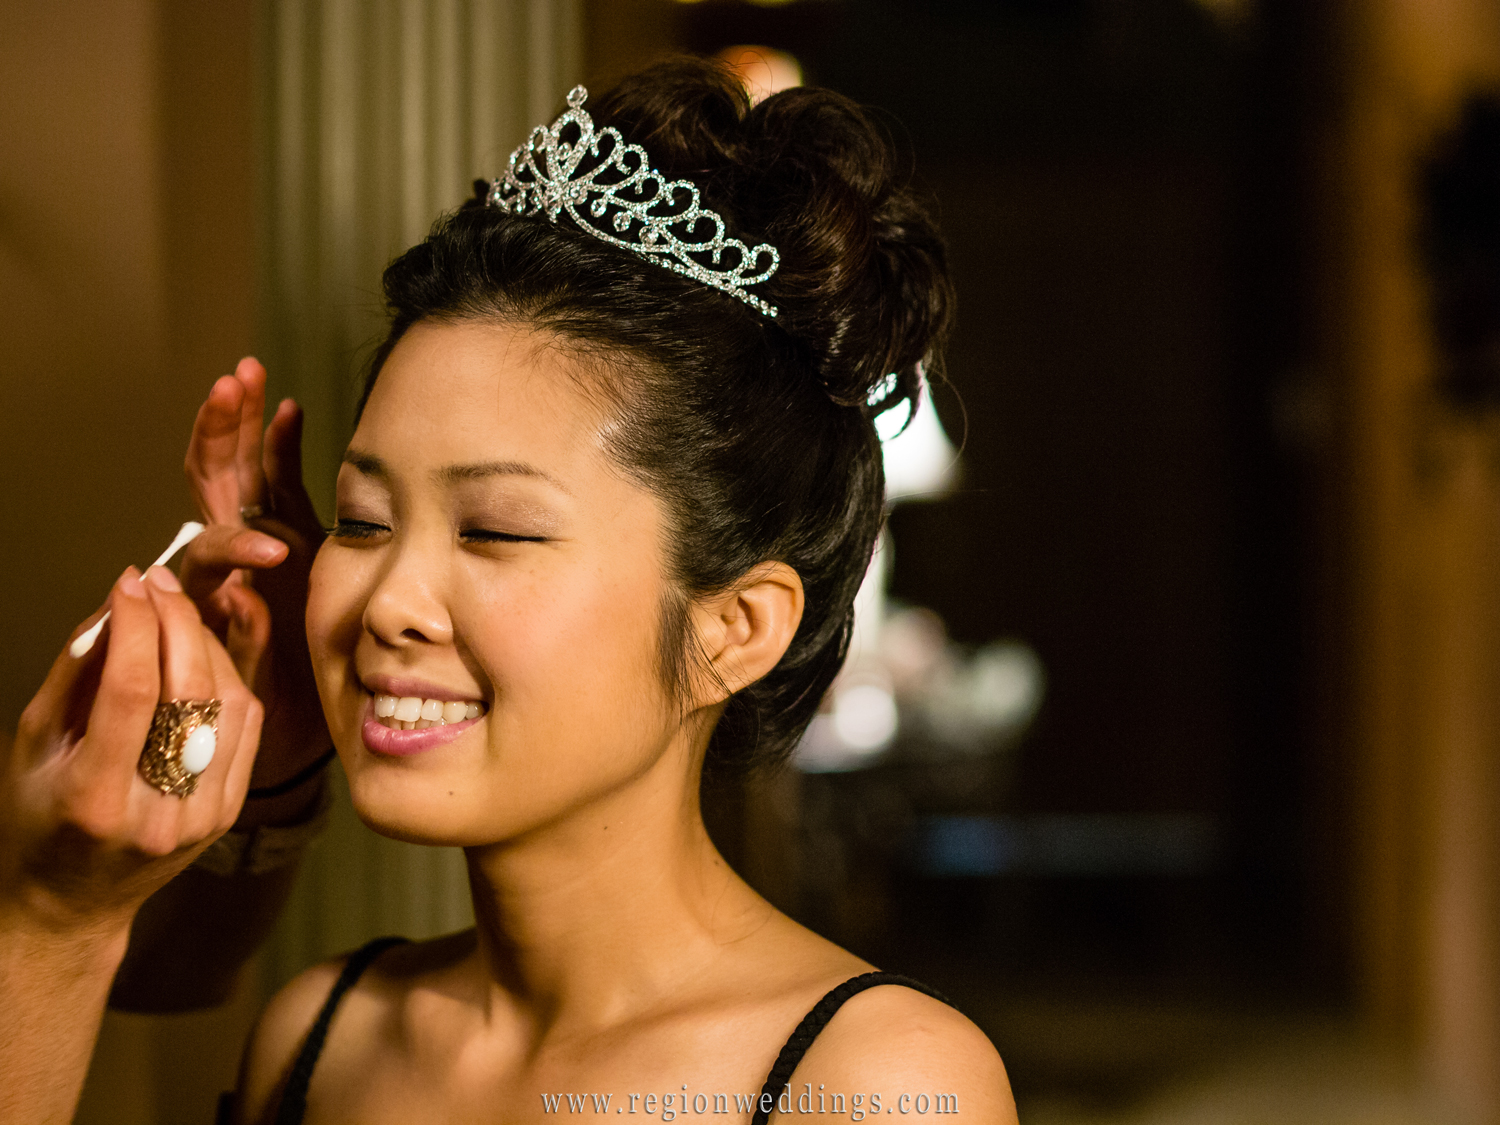 A Korean bride smiles as she is pampered before her wedding by a stylist at Robert Anthony Hair Design.